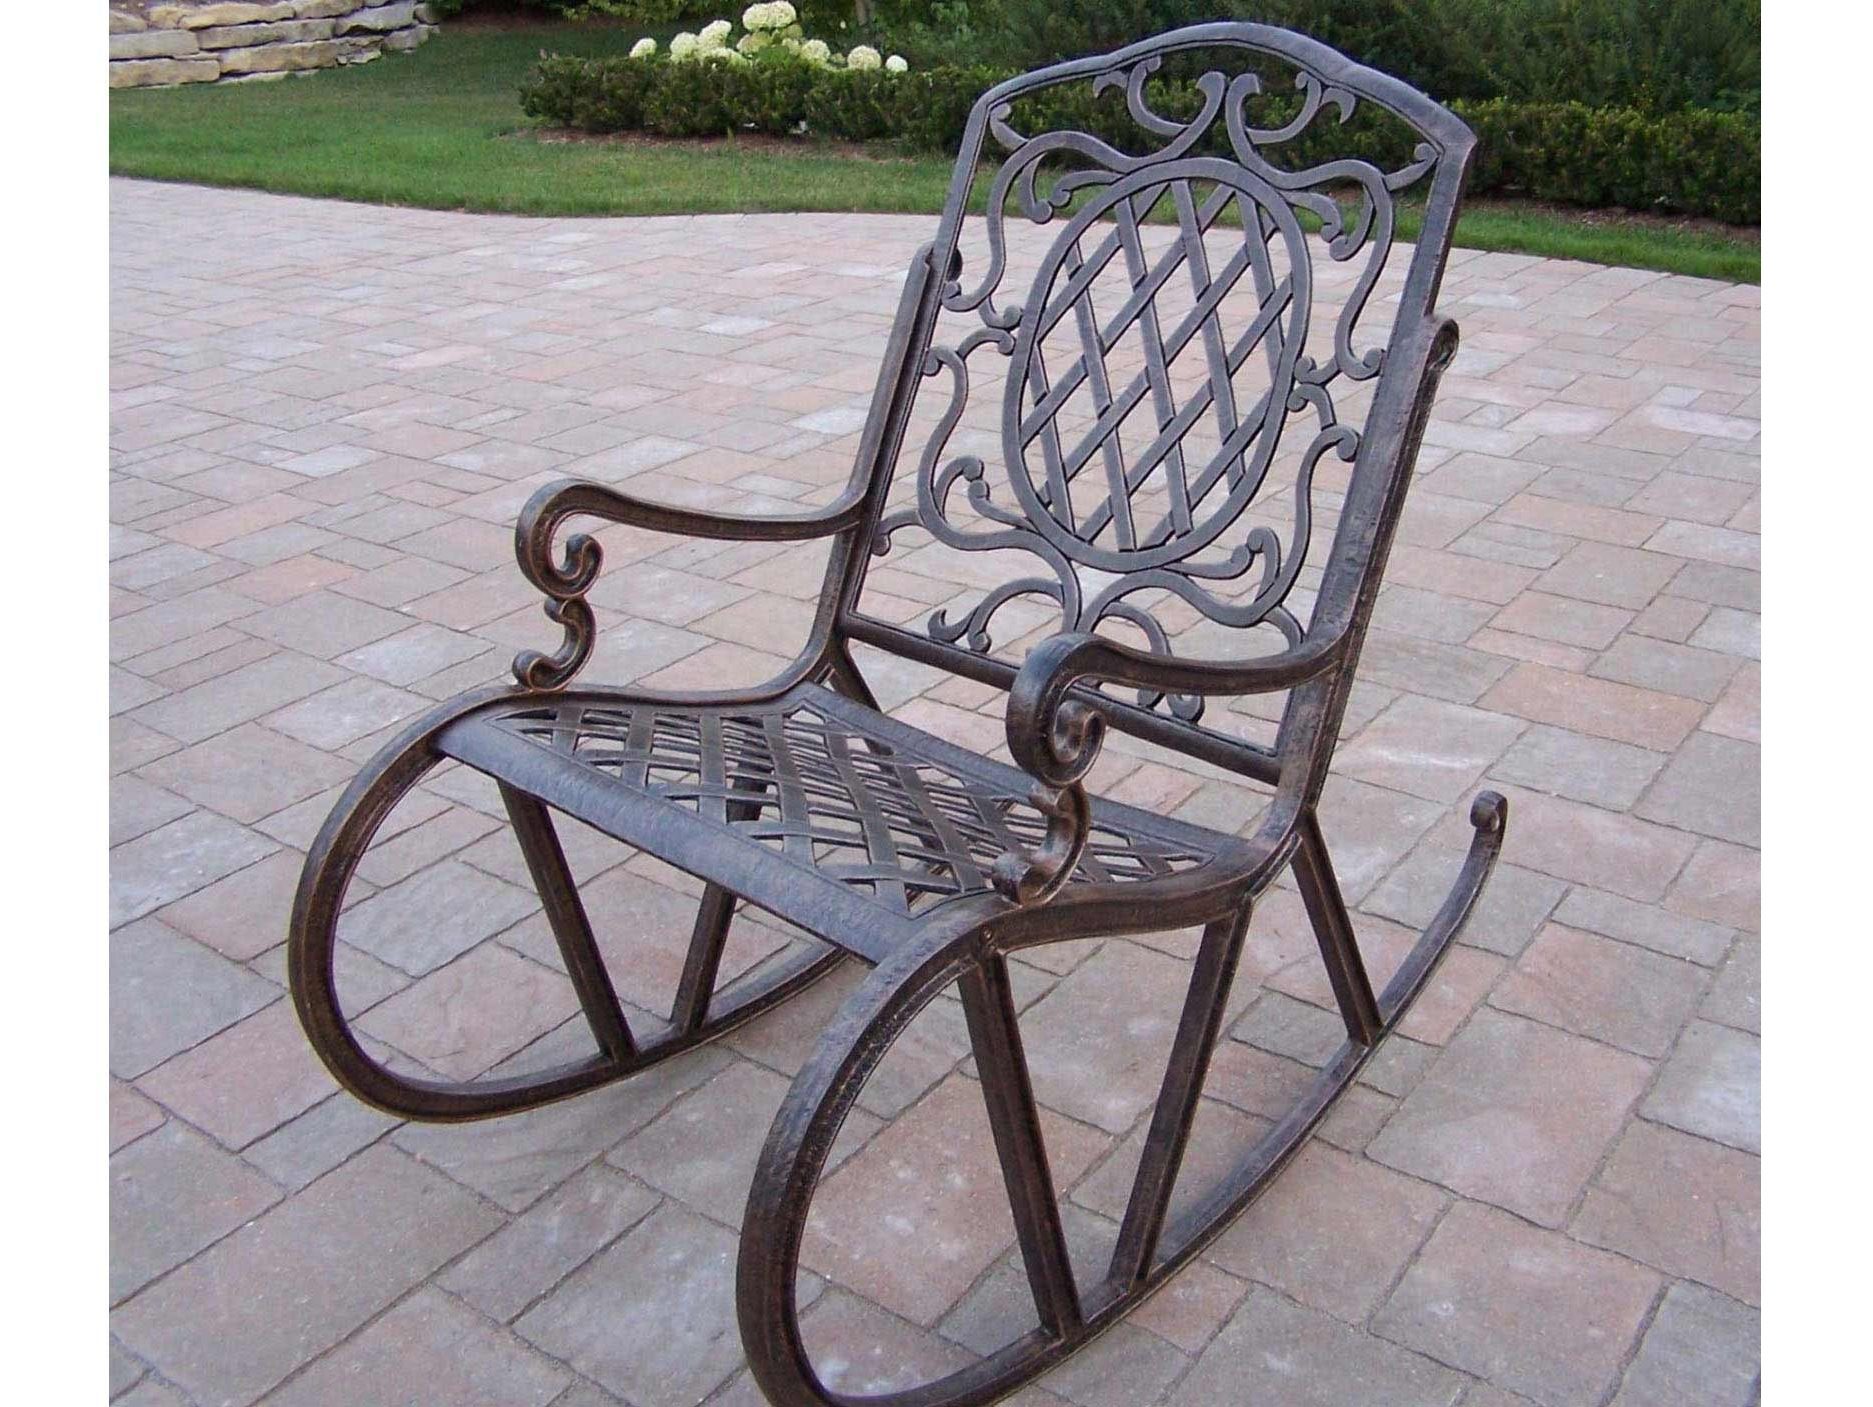 Wrought Iron Rocking Patio Furniture Chairs And Carved — The Home With Regard To Popular Iron Rocking Patio Chairs (View 11 of 15)